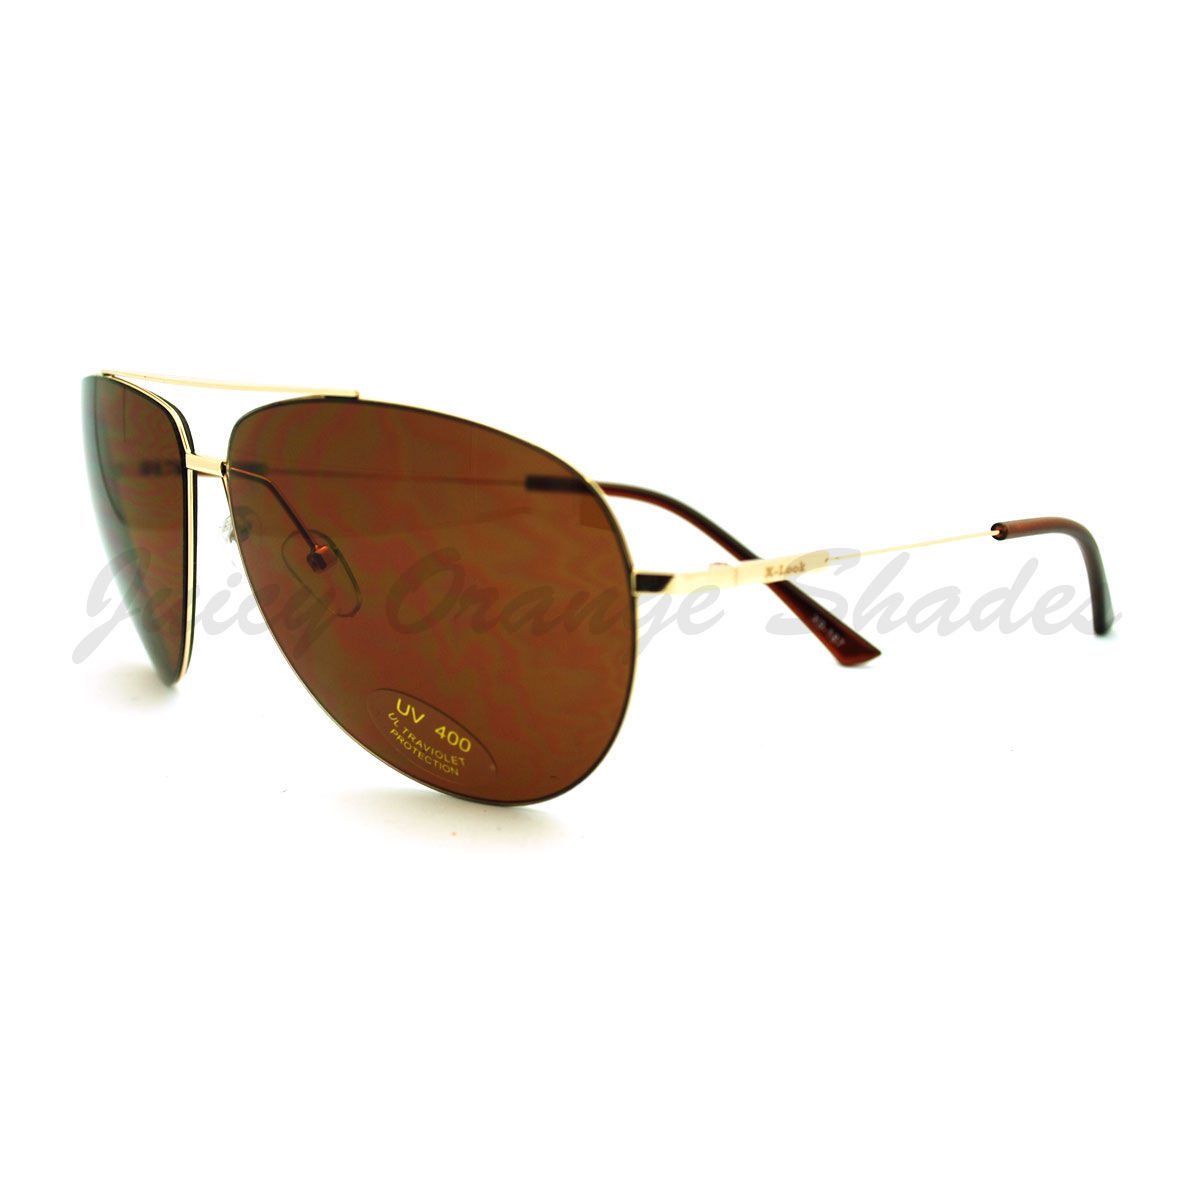 Super Lite Thin Frame Aviator Sunglasses Classic Rimless Look